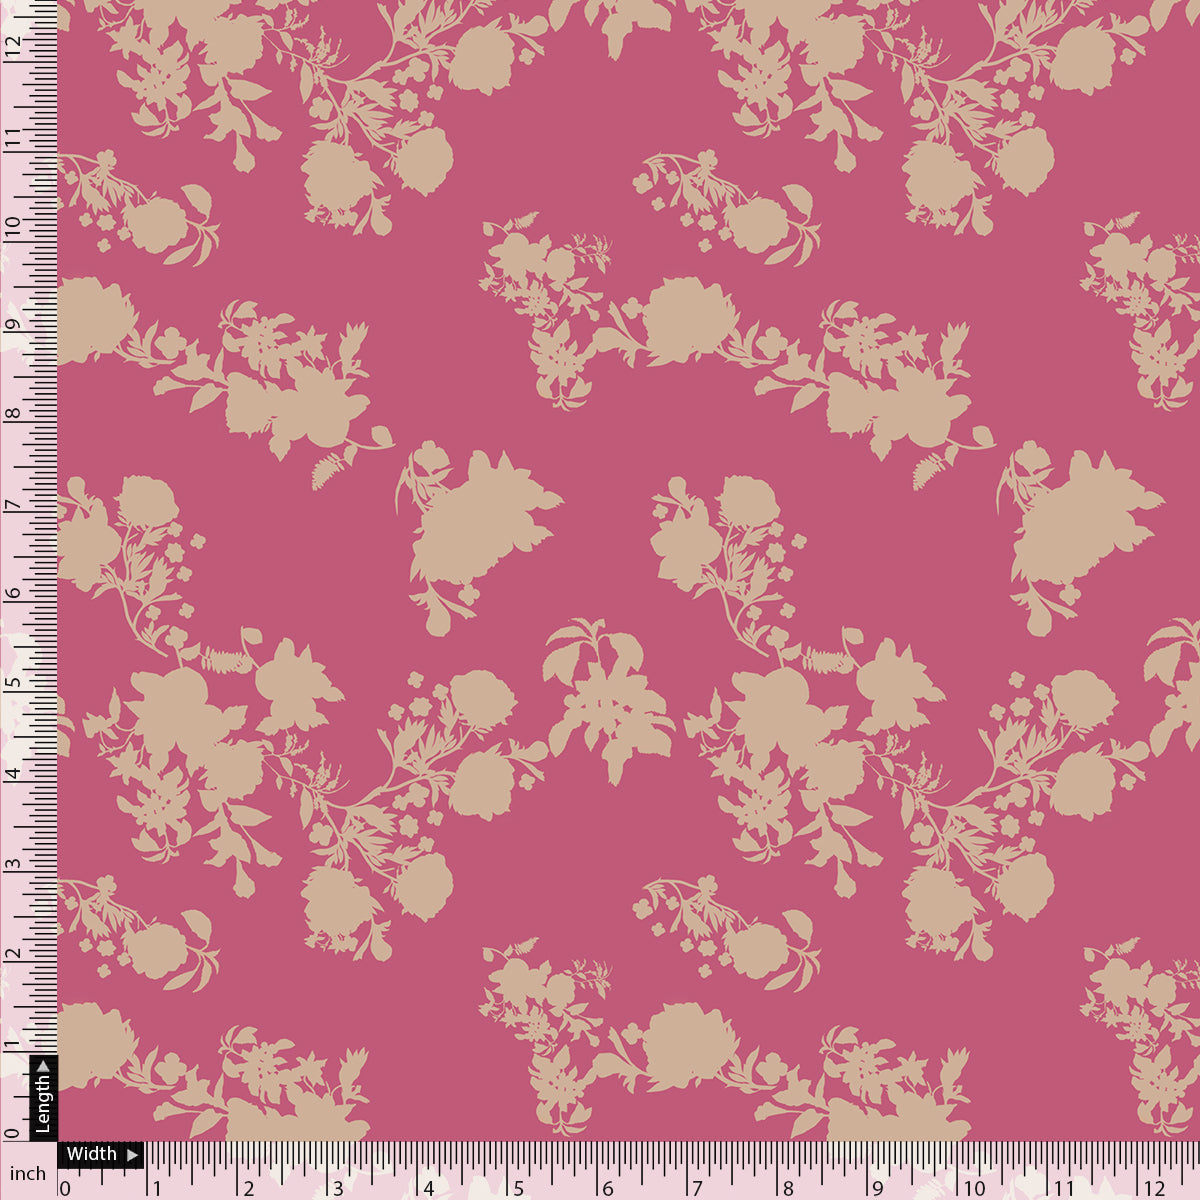 Vintage Old Spoted Flower Digital Printed Fabric